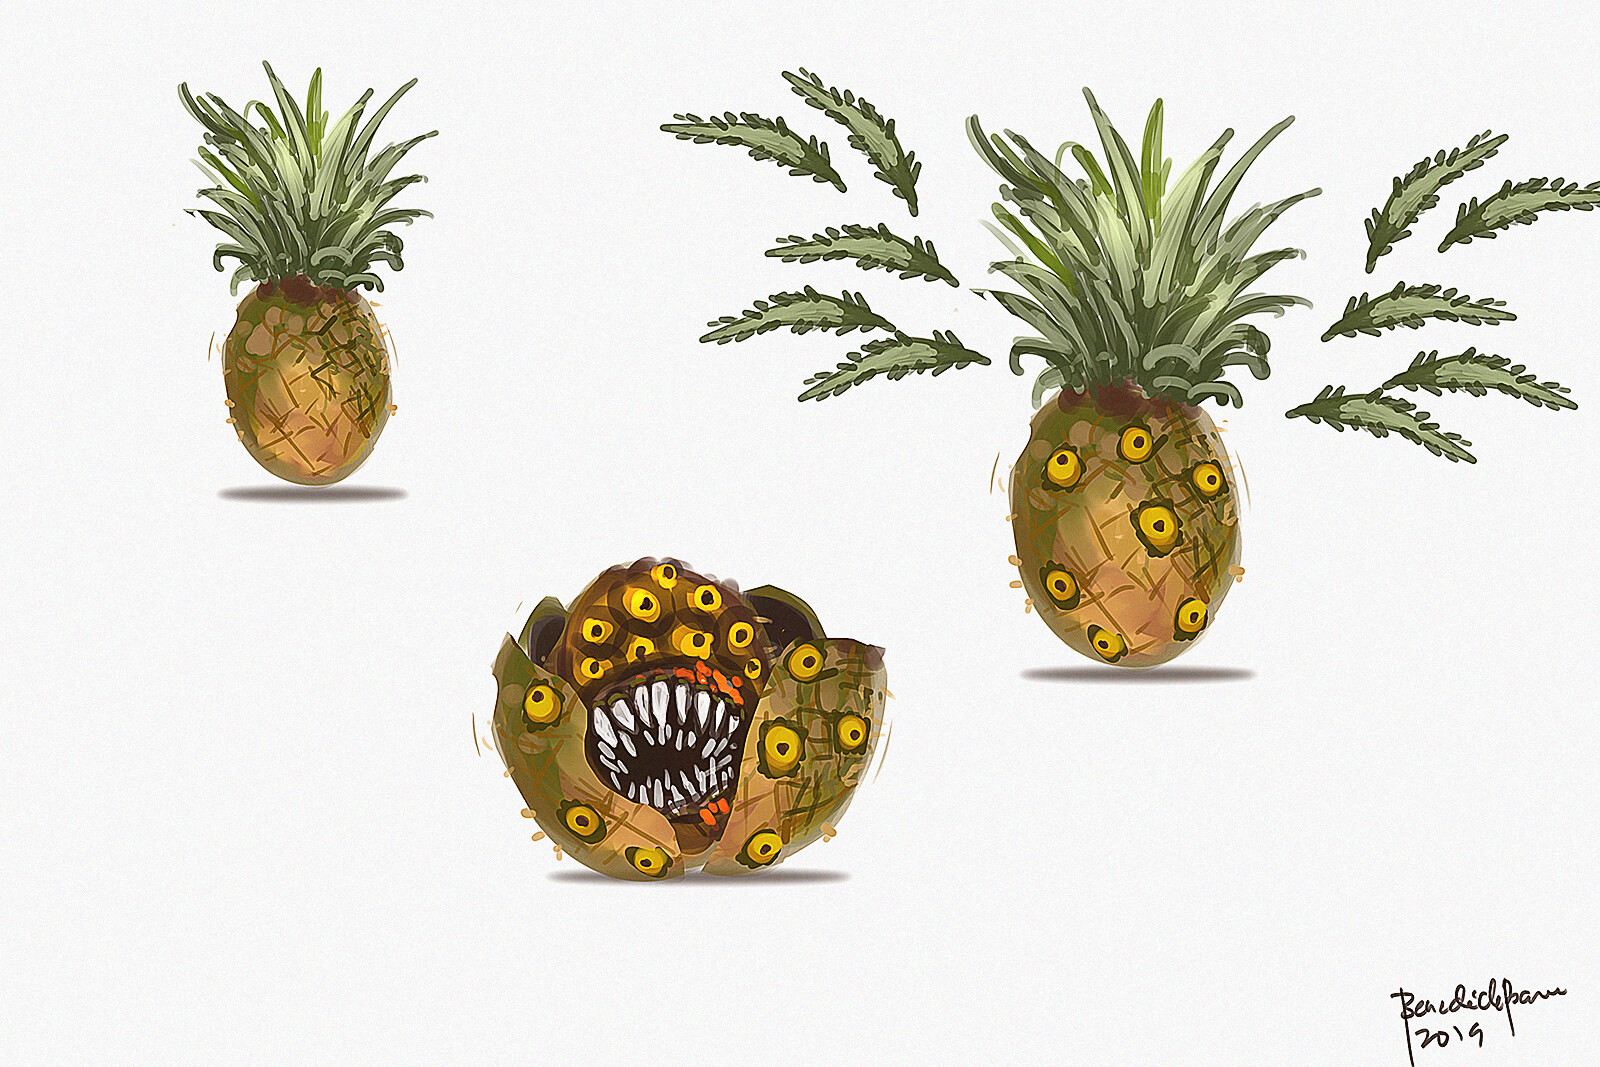 Pineas - creatures disguised as pineapple :D . its weapon - razor sharp leaves. When it peels off, it will reveal its true form with its big mouth sharp teeth.